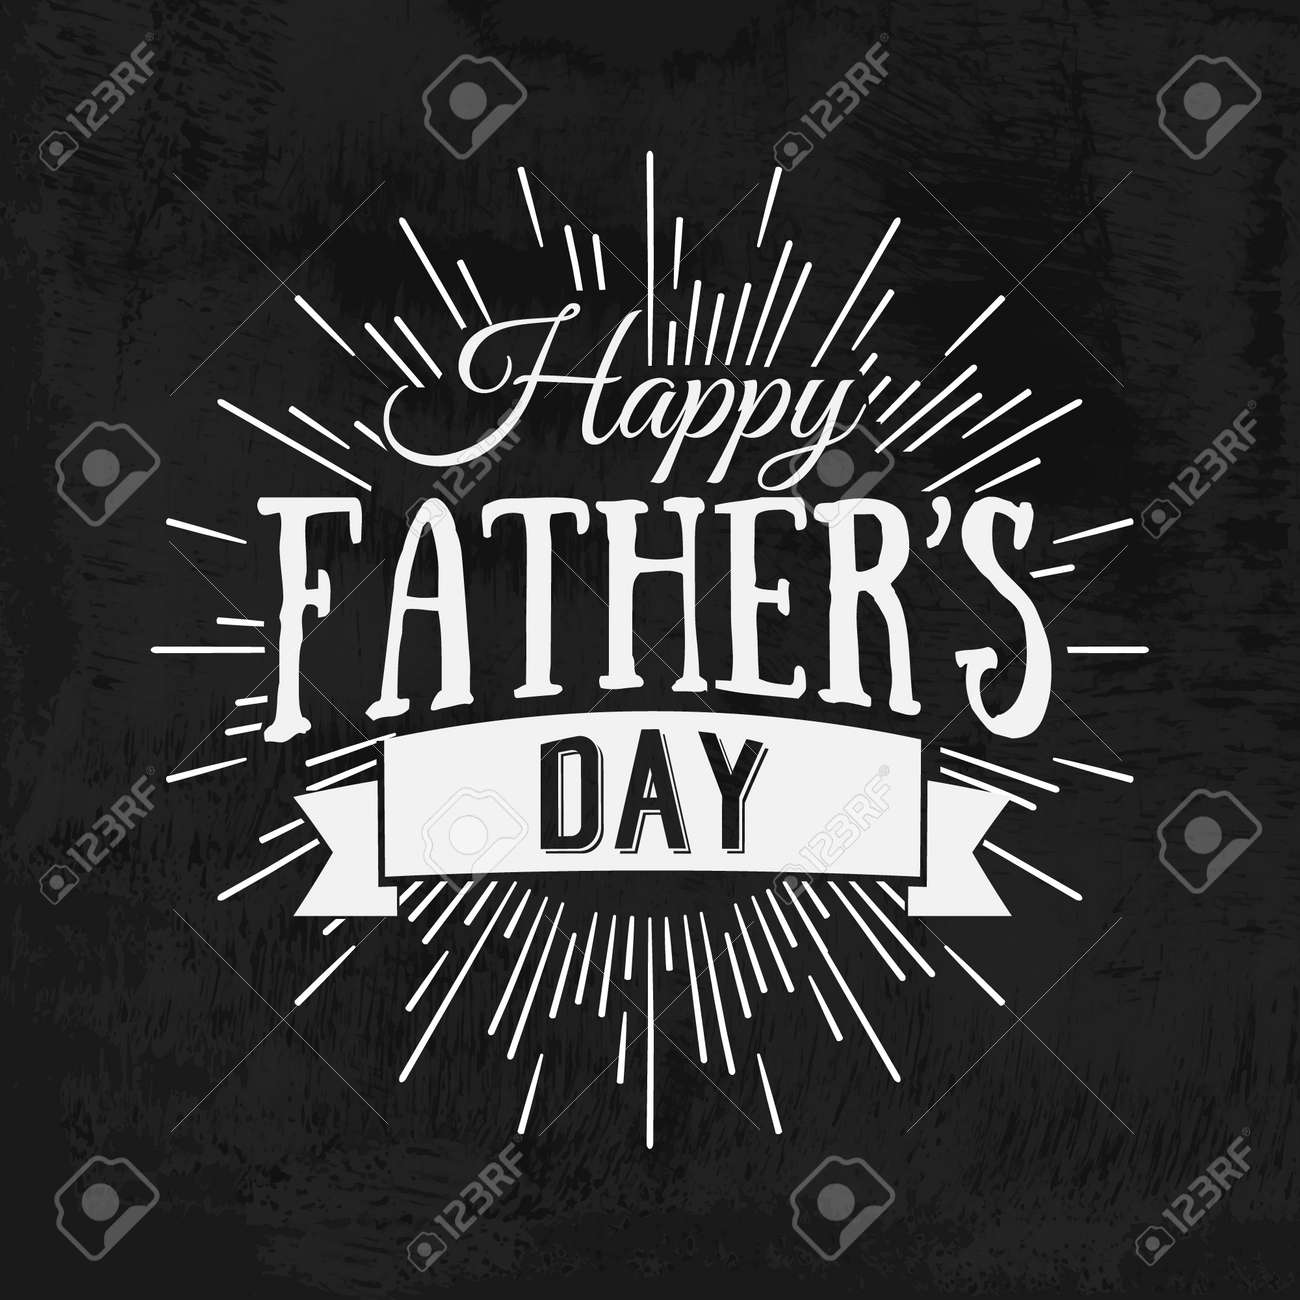 Happy Father's Day Retro calligraphic design element. Happy Father's Day Vintage Typographical Chalkboard Background. Happy Fathers Day retro chalk label with light rays. Vector illustration. - 54147638